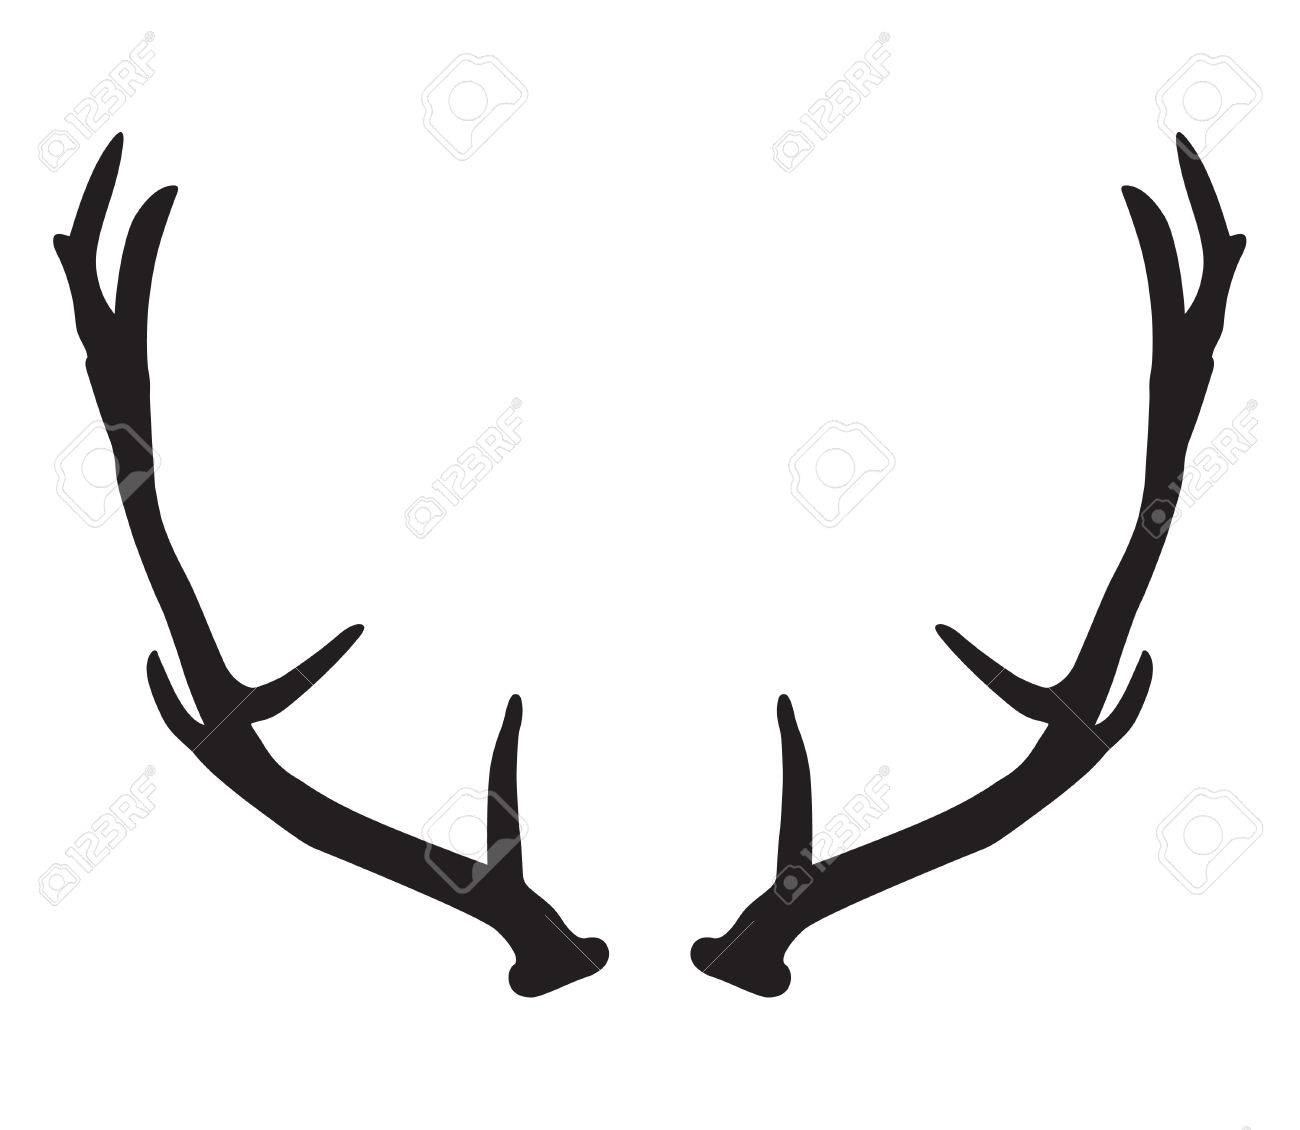 black silhouette of deer antlers royalty free cliparts vectors and rh 123rf com deer antler vector images deer antlers vector free